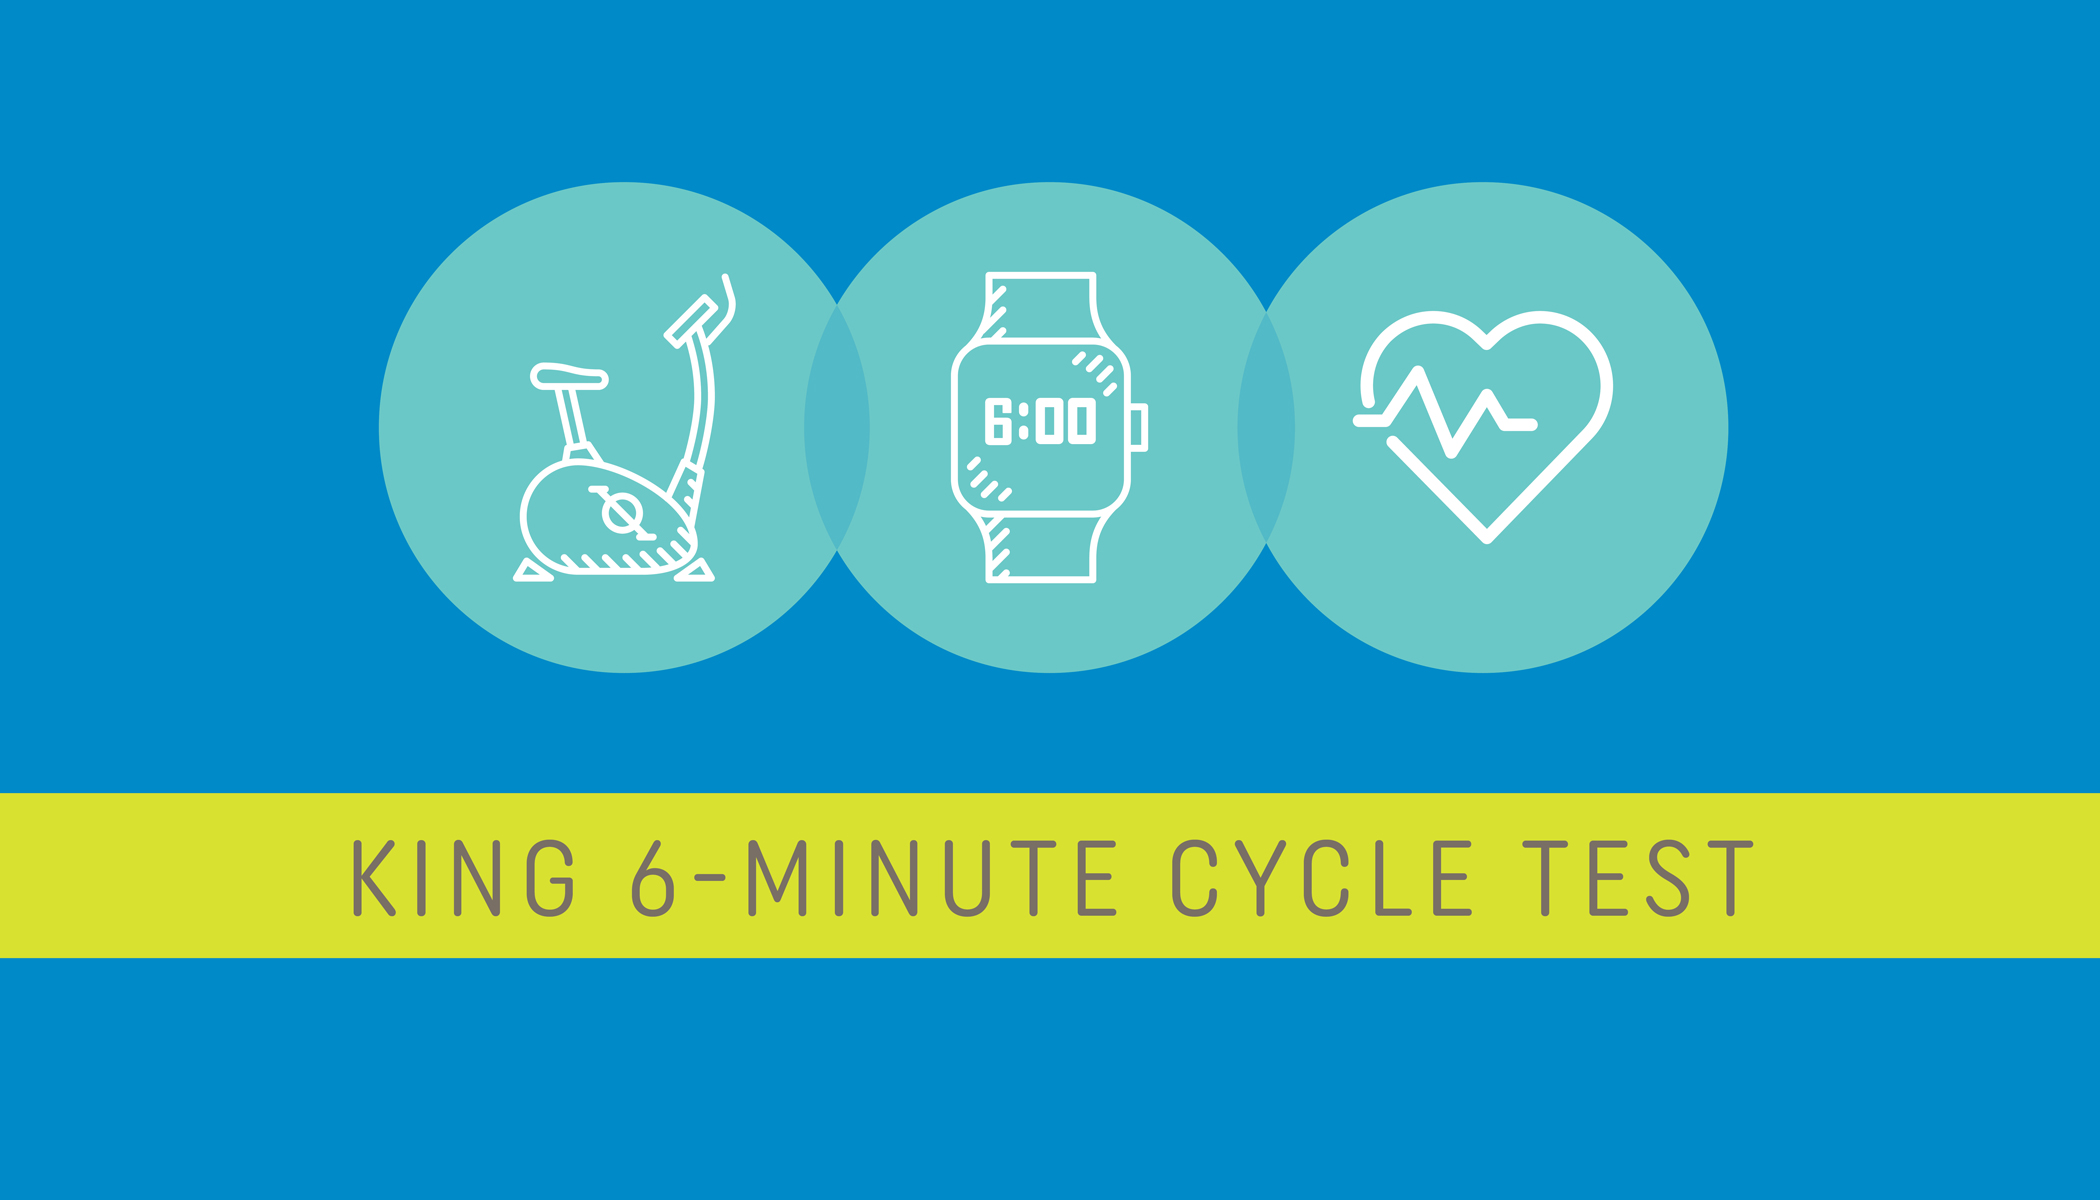 Administering the King 6-Minute Cycle Test